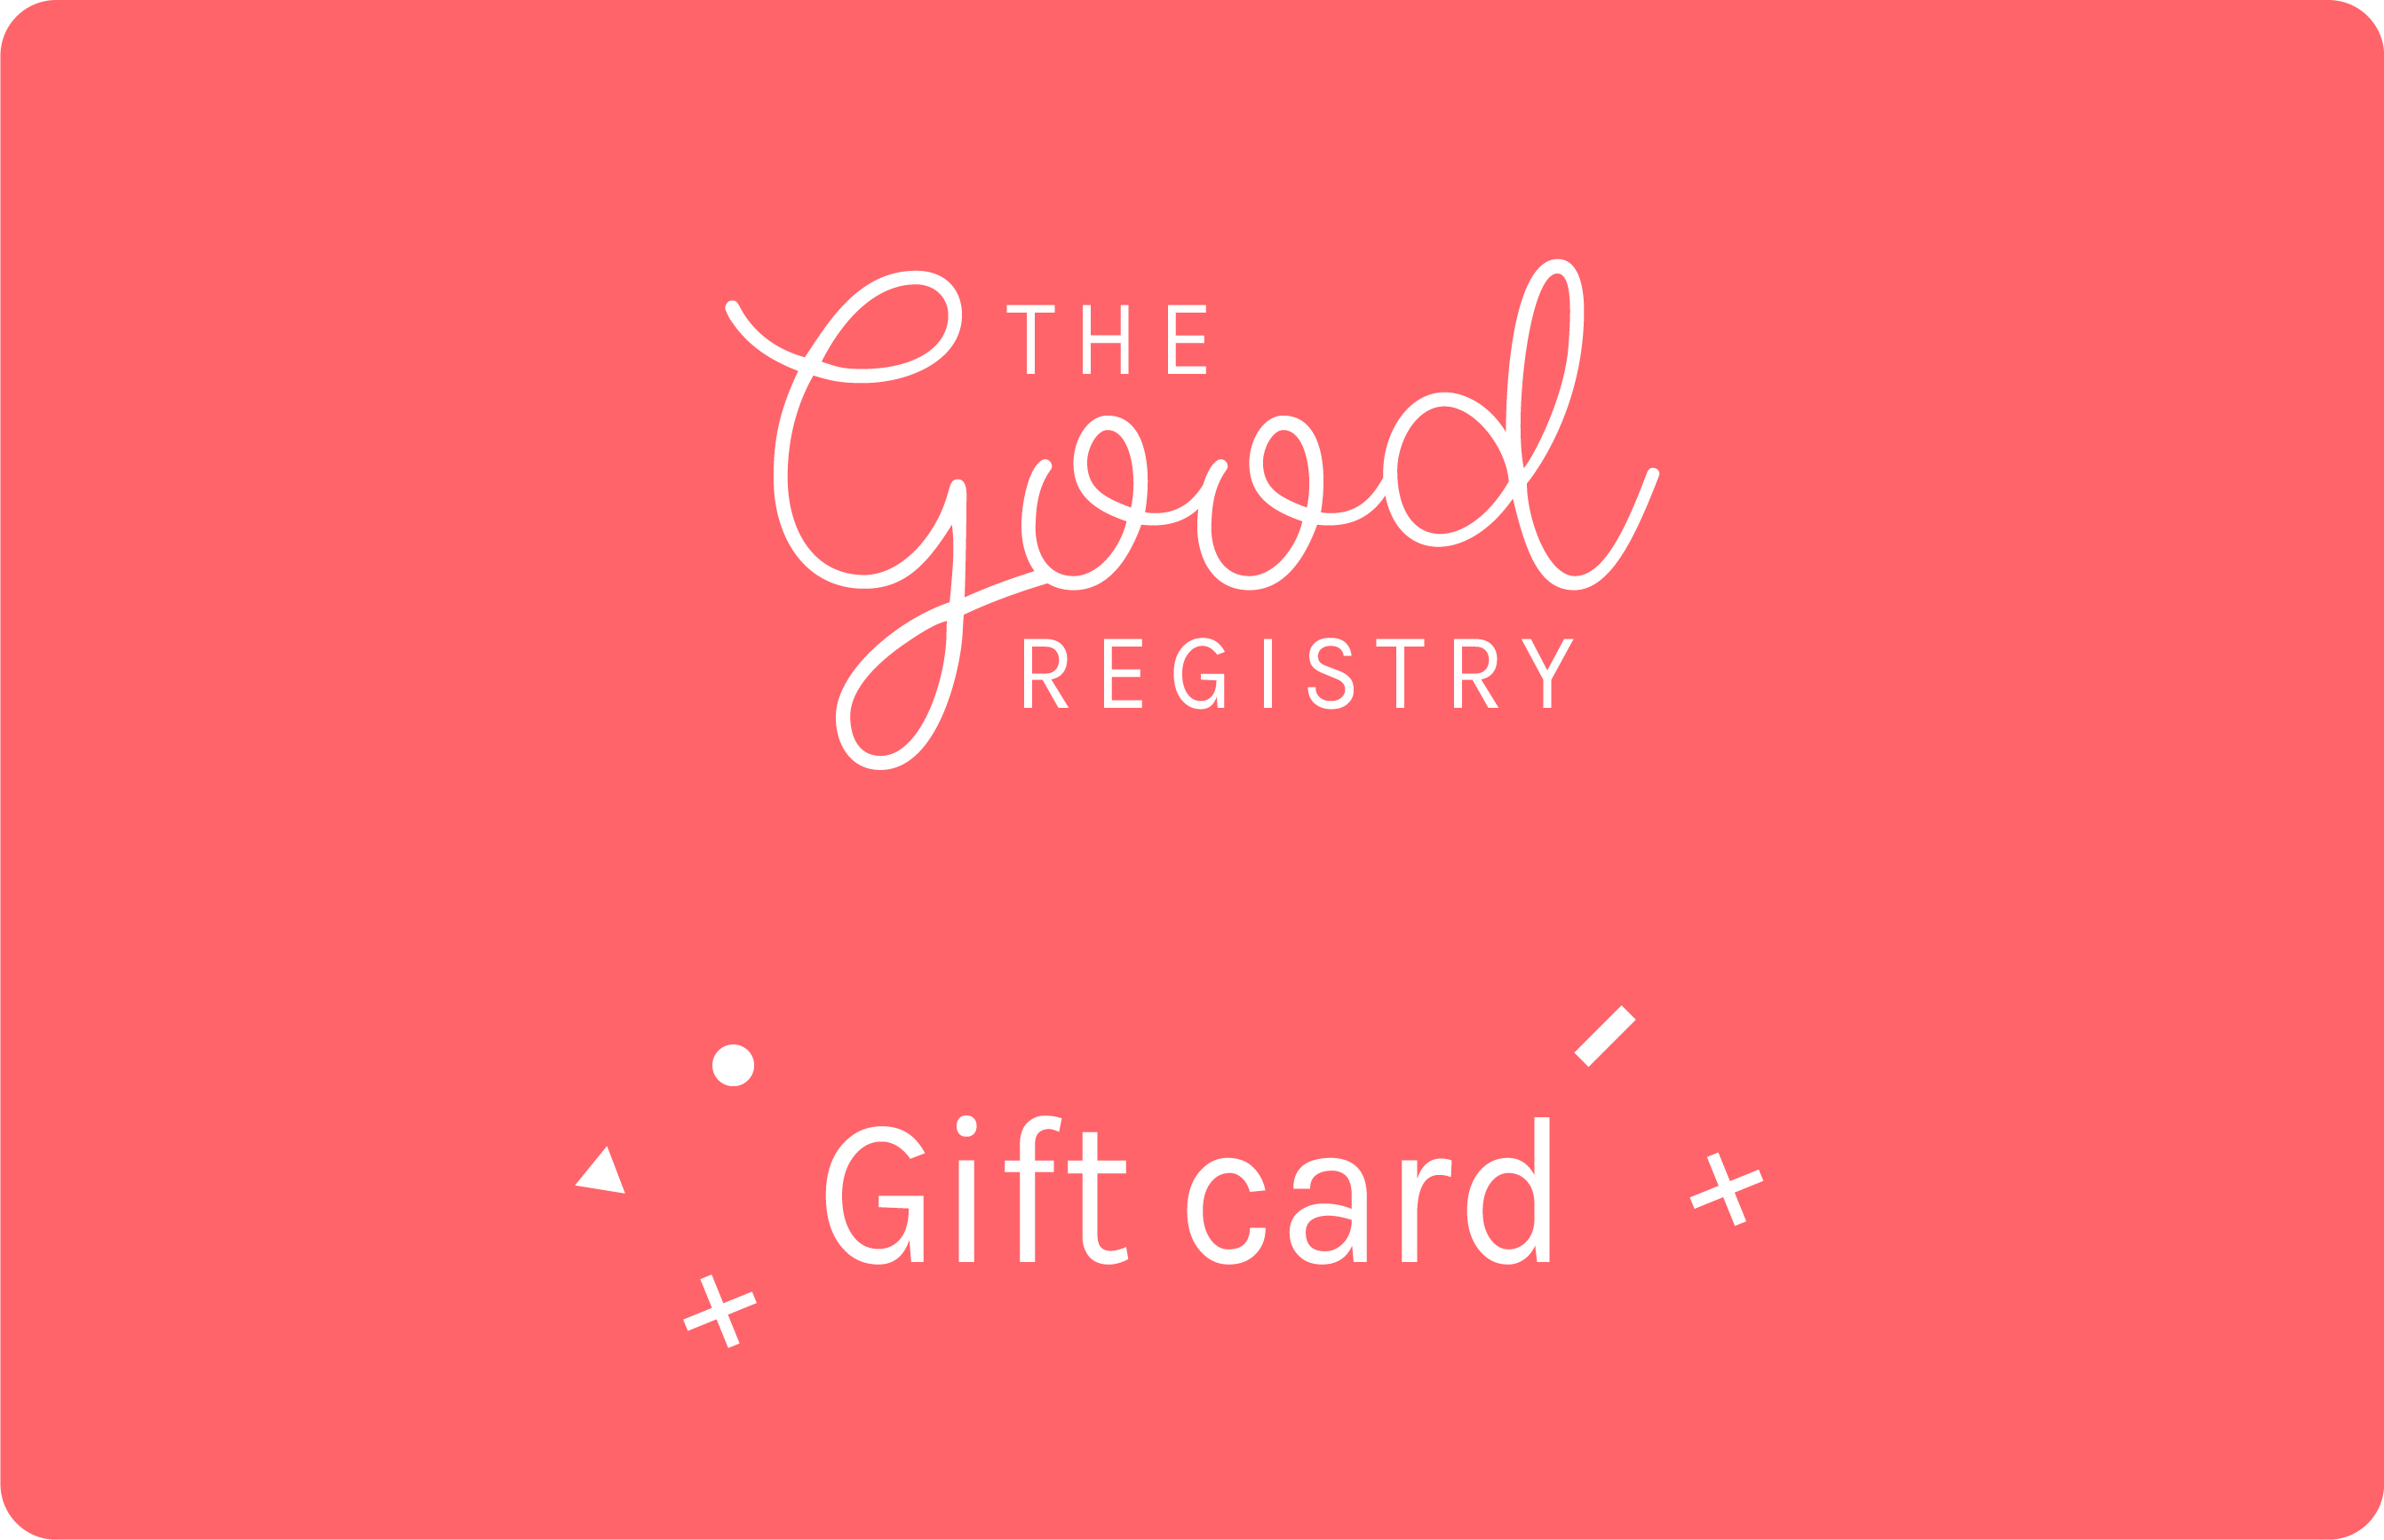 Give the gift of giving with Good Gift Cards